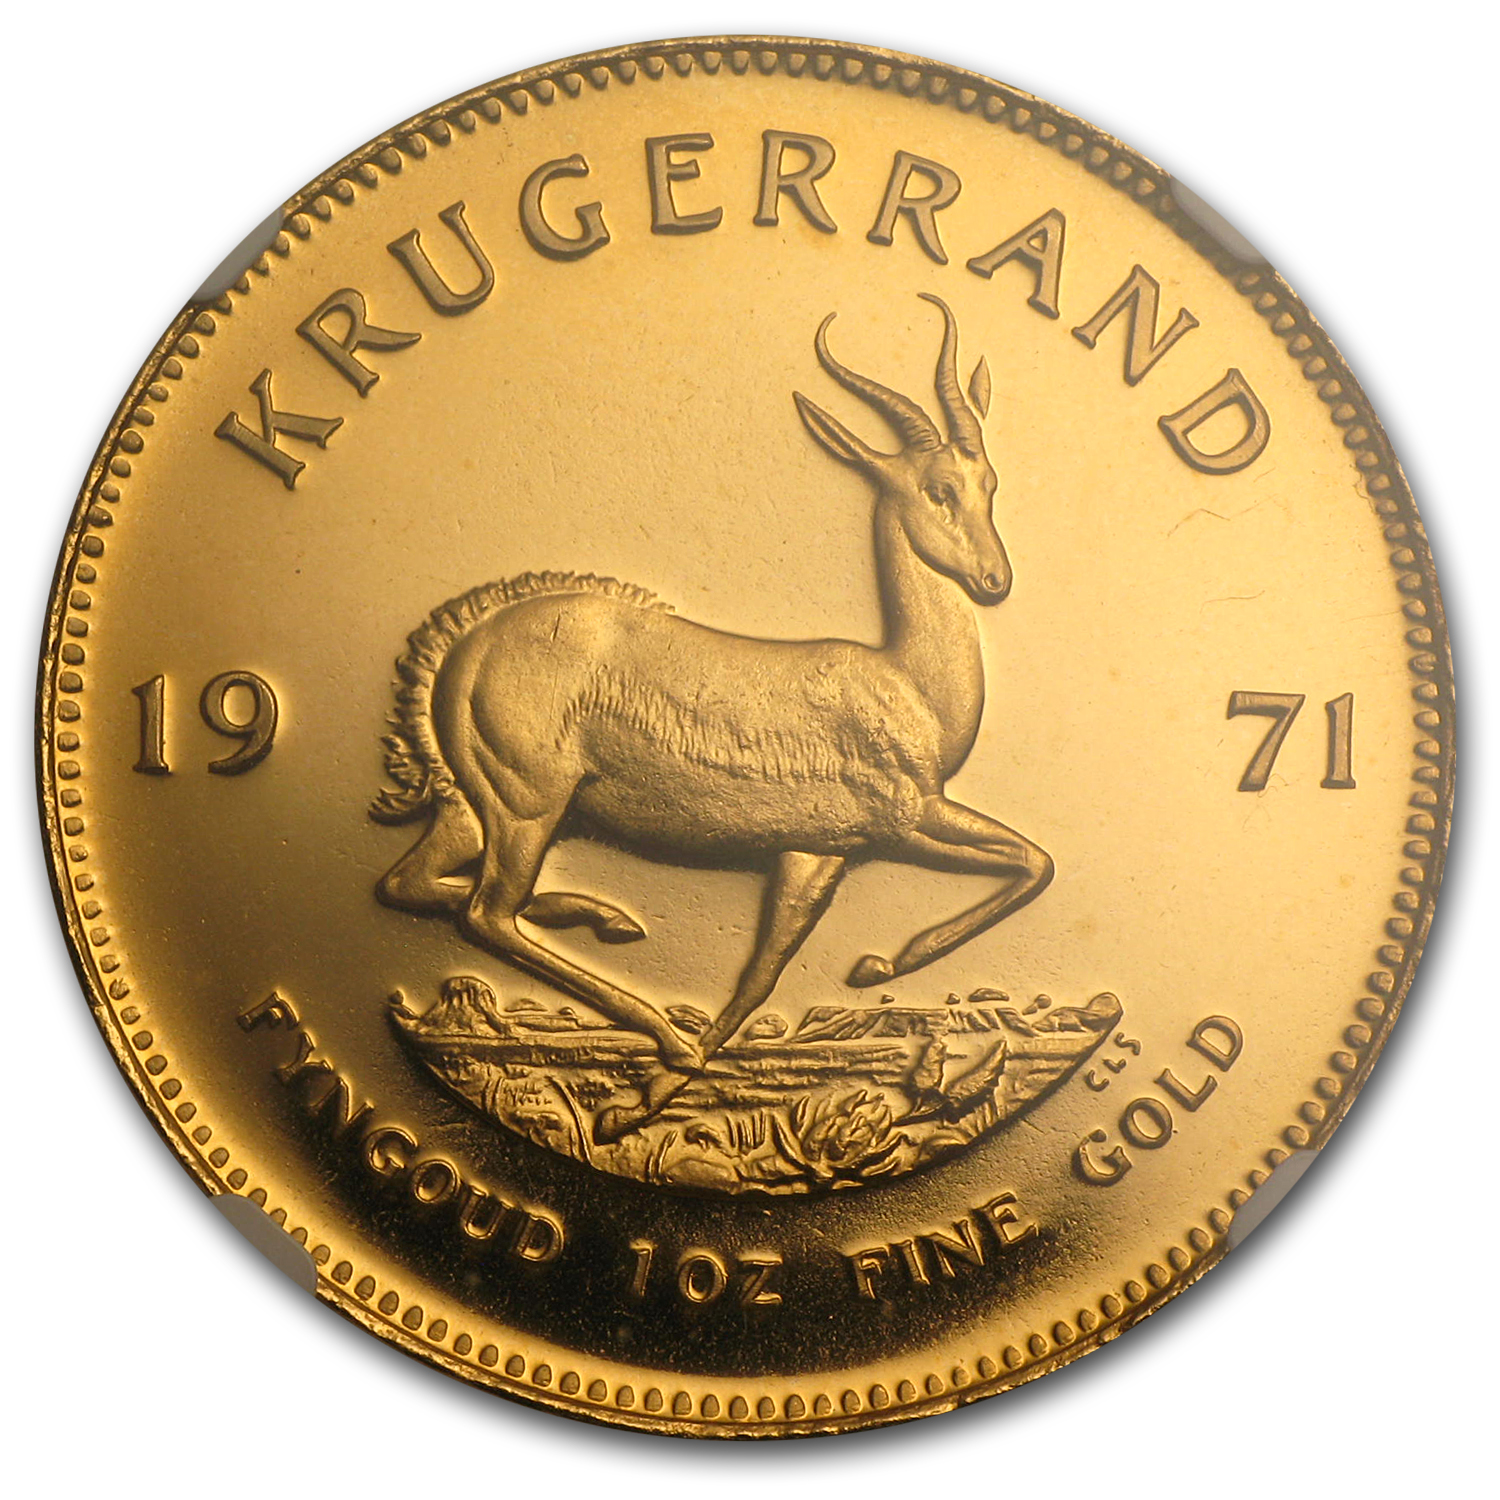 1971 South Africa 1 oz Gold Krugerrand PF-67 NGC